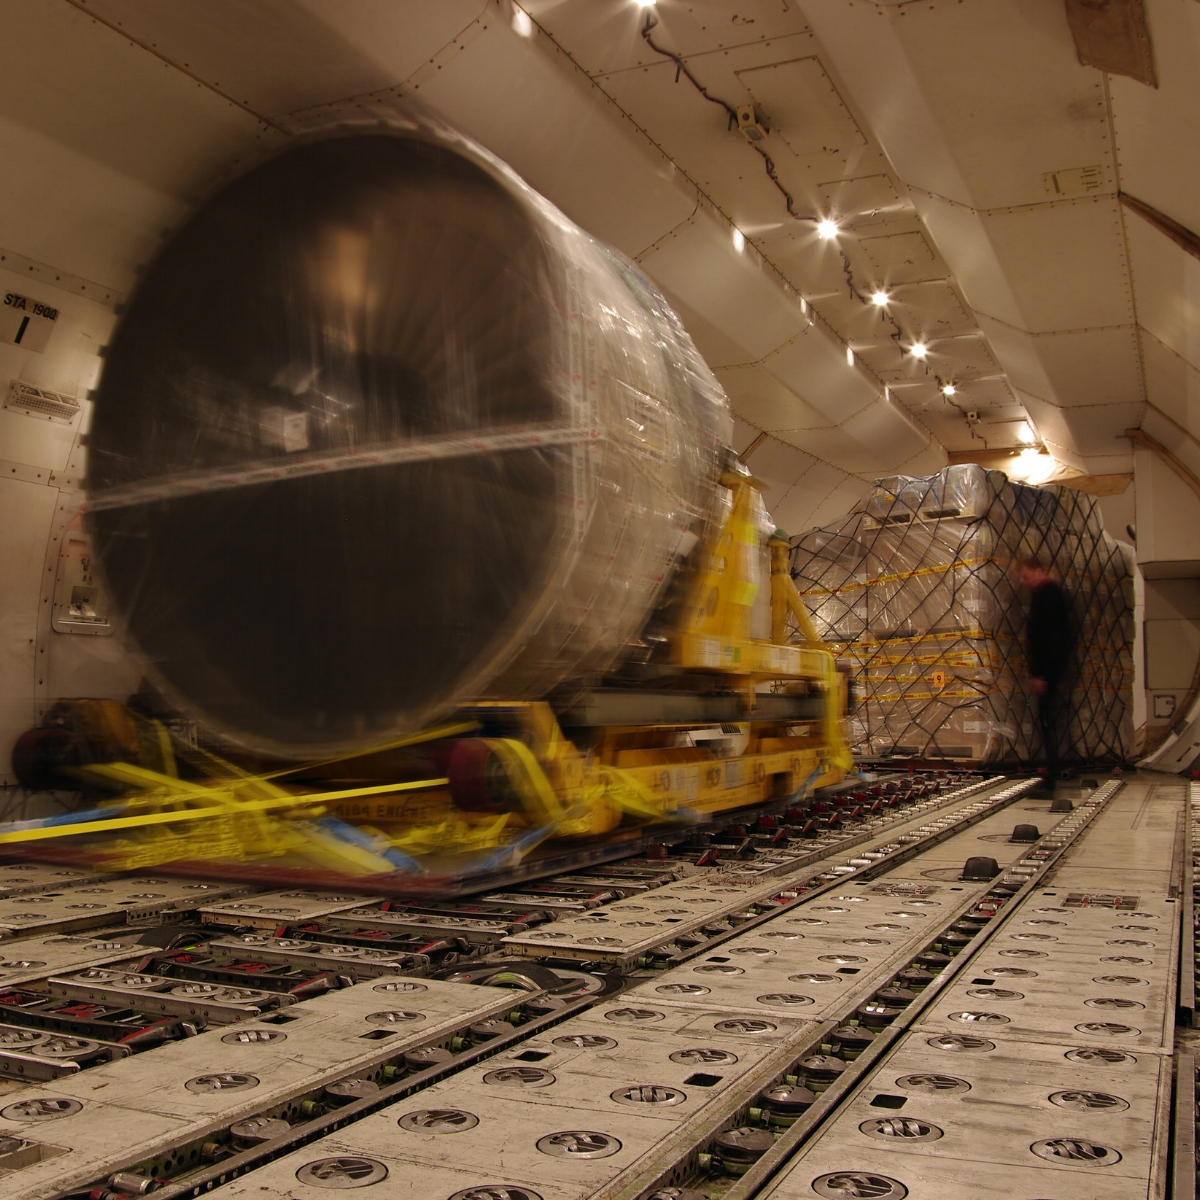 Specialized cargo services for pharmaceutical electronics and technology industries